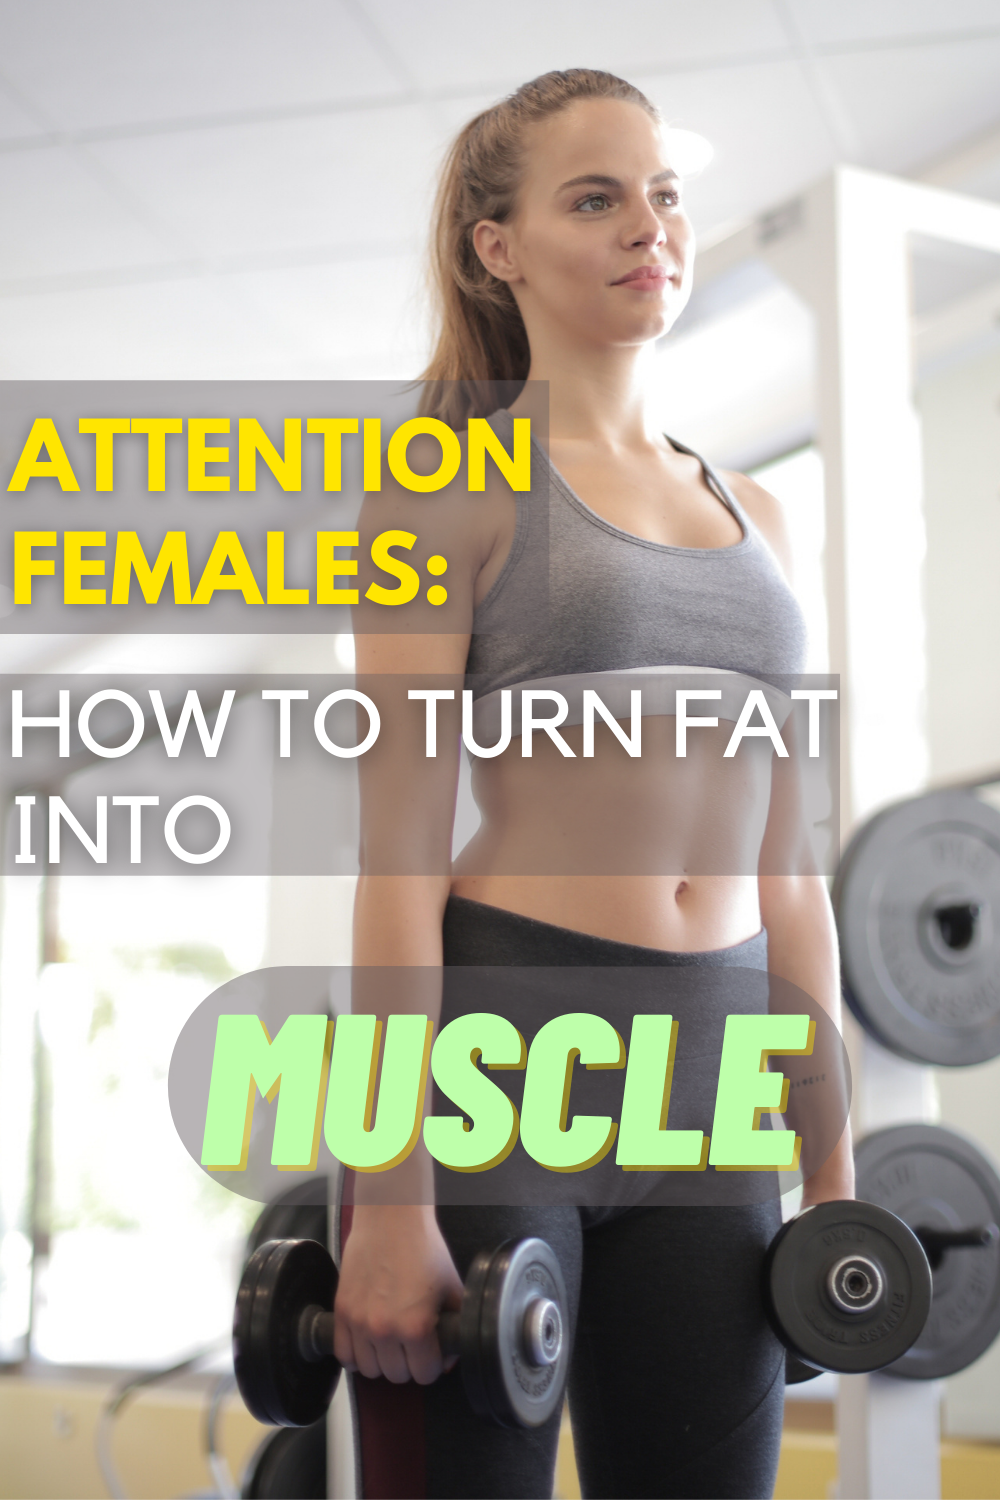 Find out the EXACT ways to turn fat into muscle with diet and workouts for women. Body recomposition is means getting rid of excess belly fat and unleashing a toned physique. Follow these fat to muscle workout and you will be shocked to see the before and after comparison. Now you can also lose fat and gain muscle with specific meal plan described in this article. #turnfatintomuscle #losefatgainmuscle #womenfitness